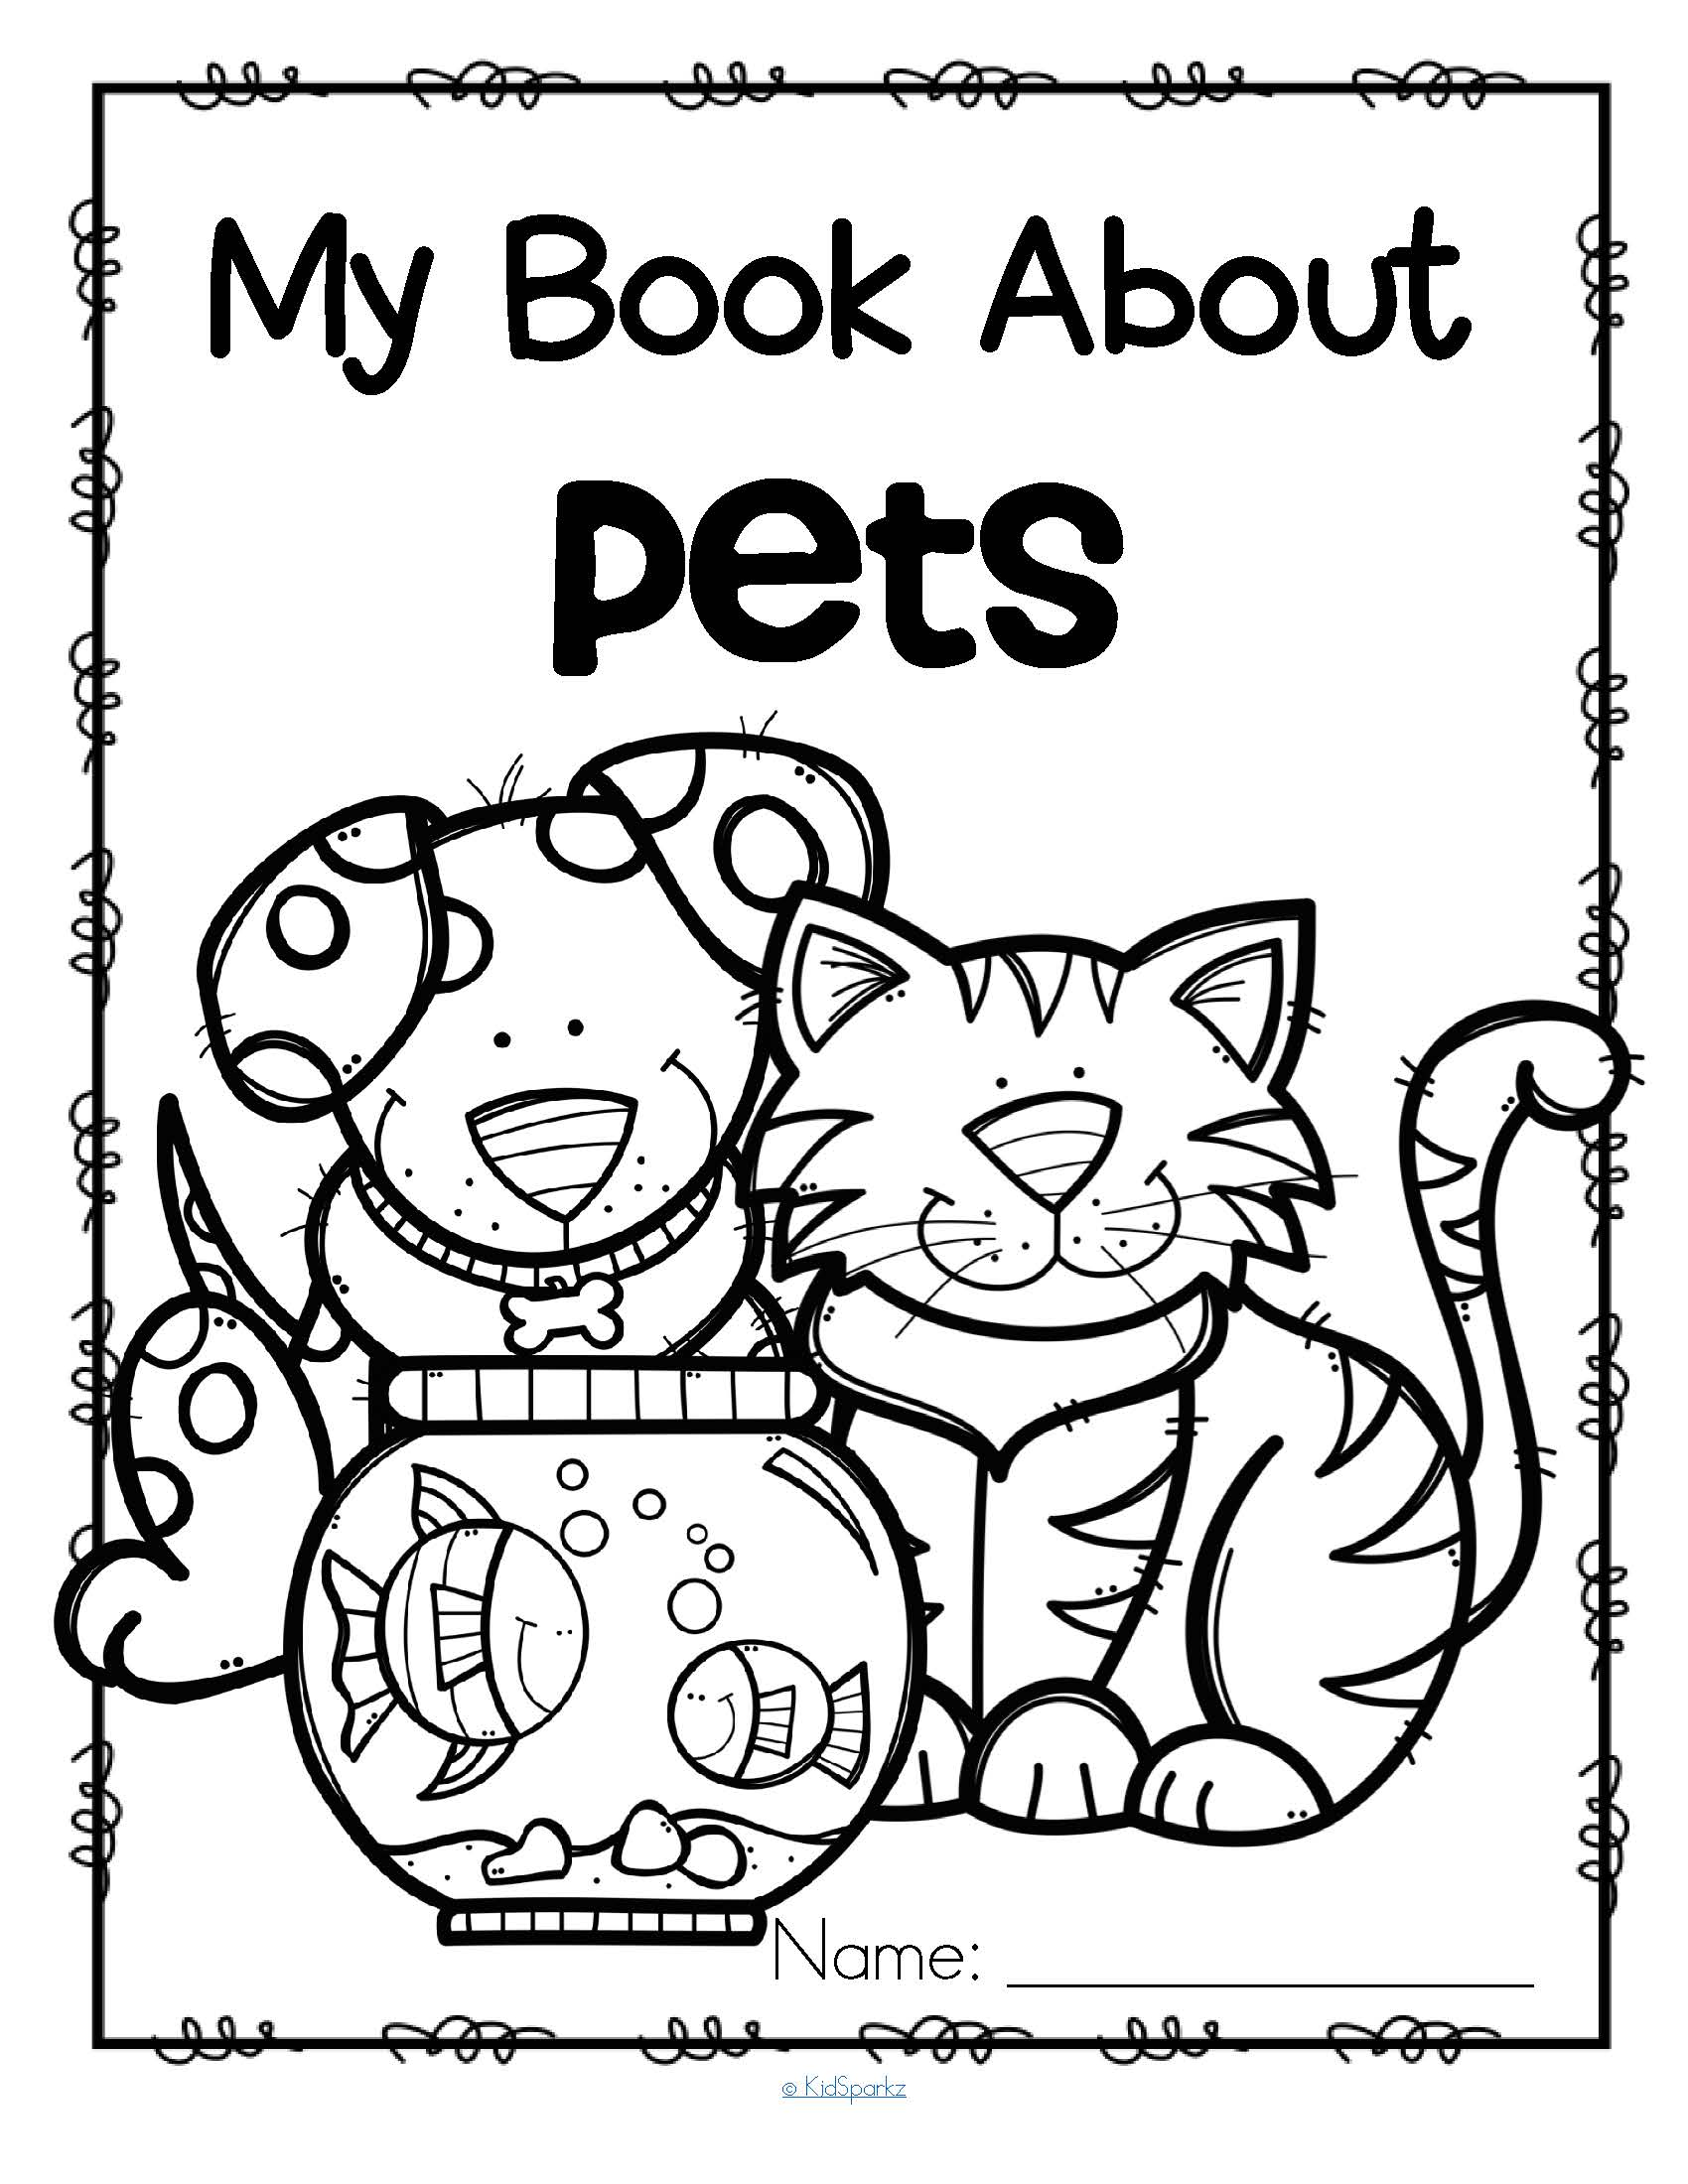 Worksheets About Pets